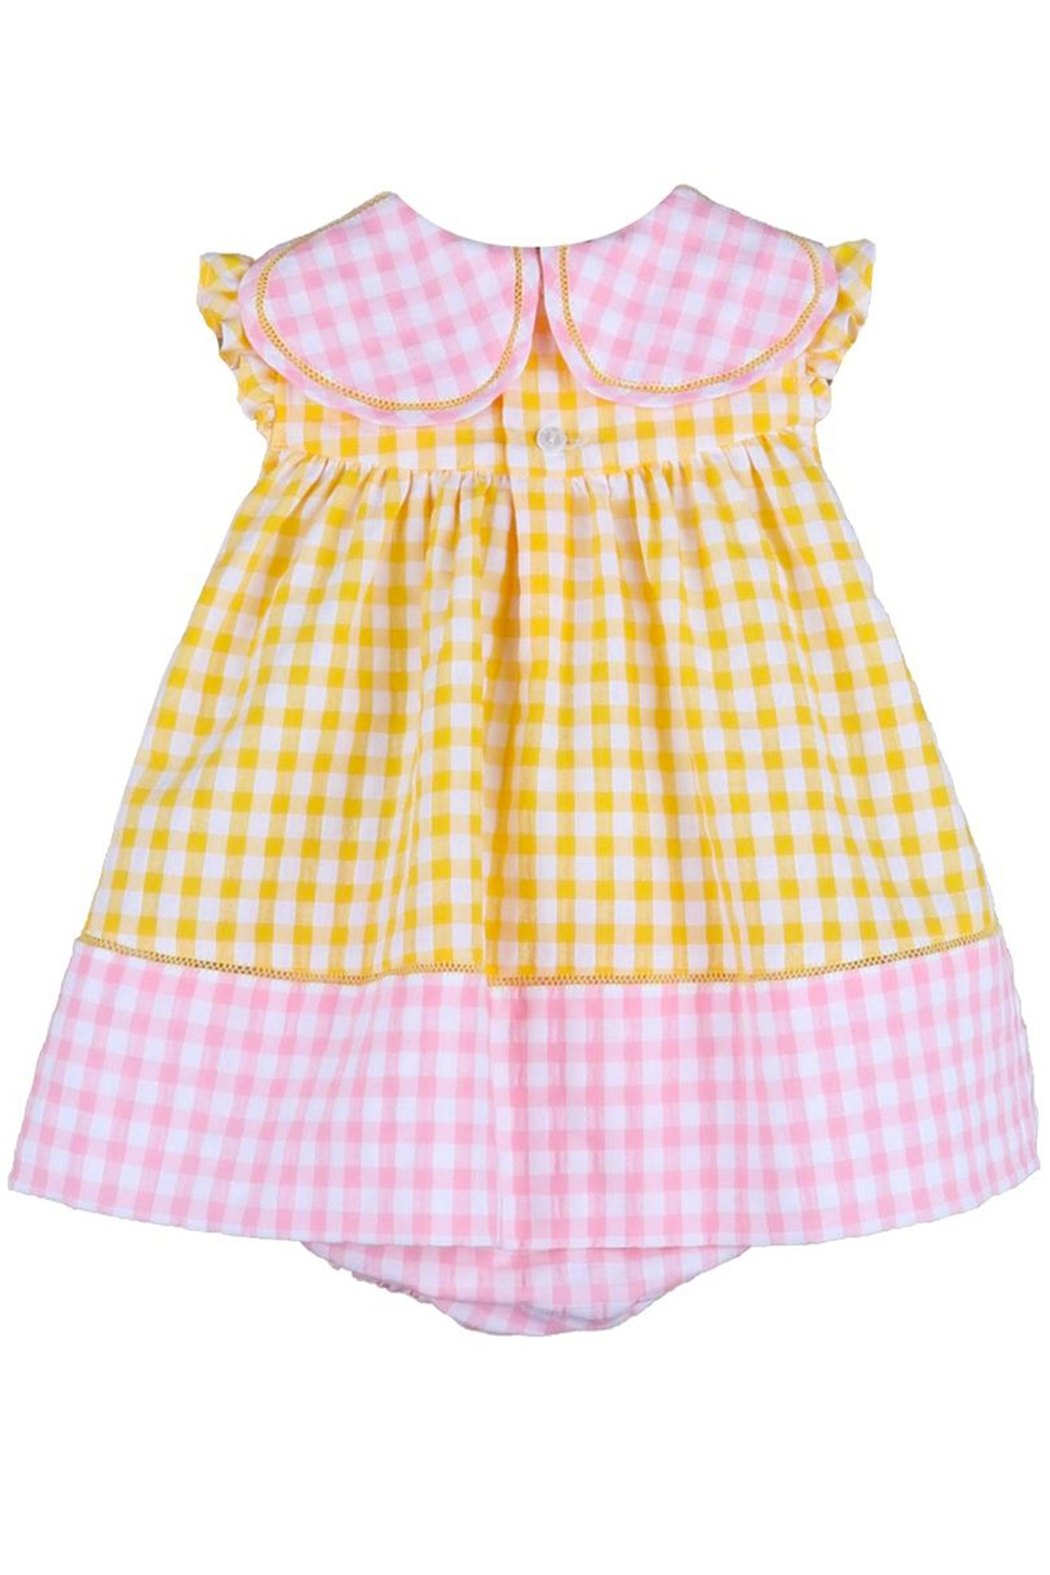 Sophie & Lucas Sunny-Chicks Pink-Yellow-Gingham Petal-Dress - Side Cropped Image